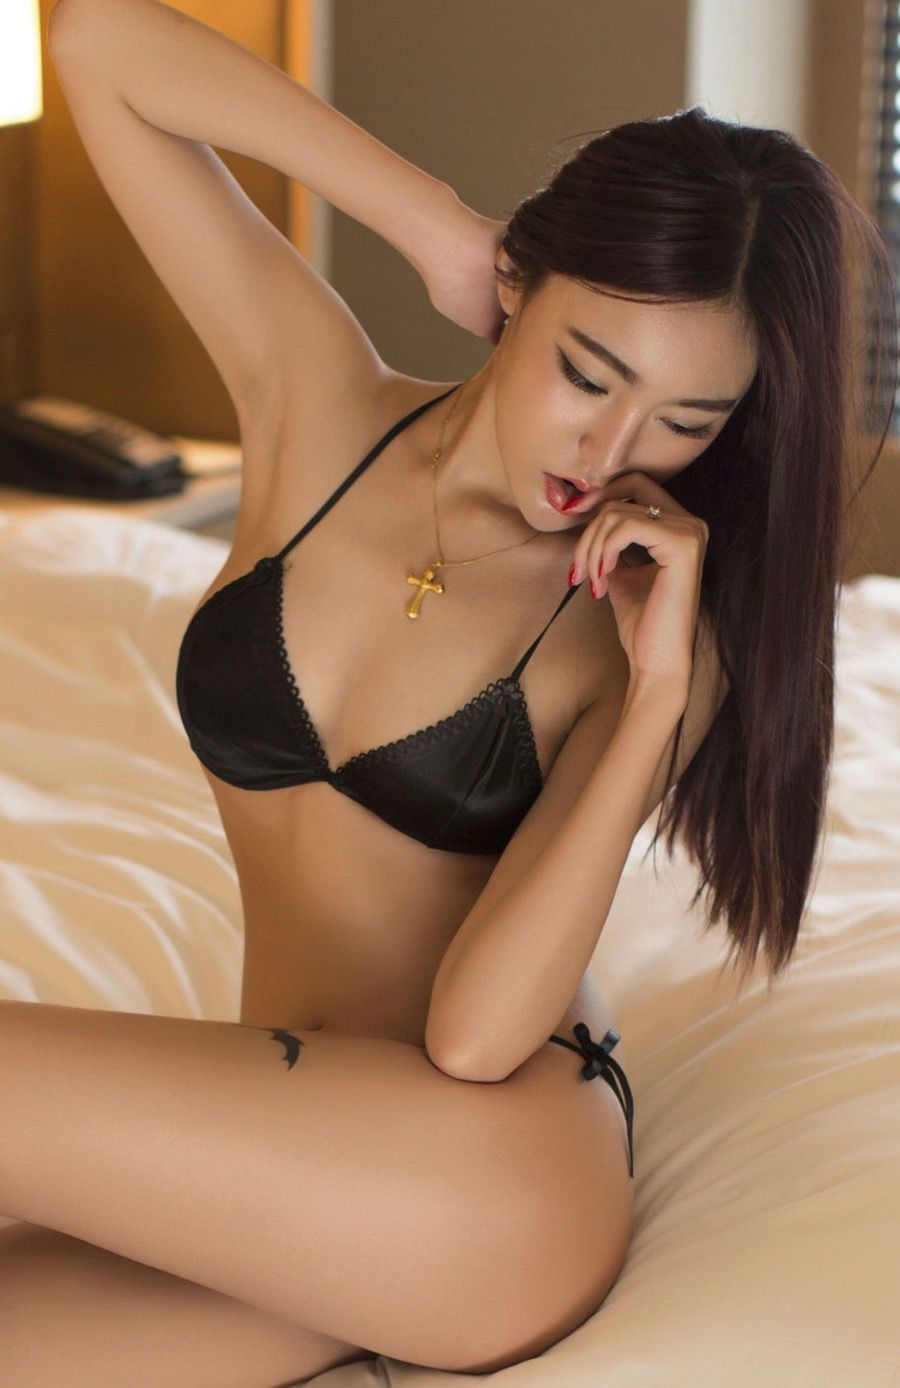 White male asian female dating site